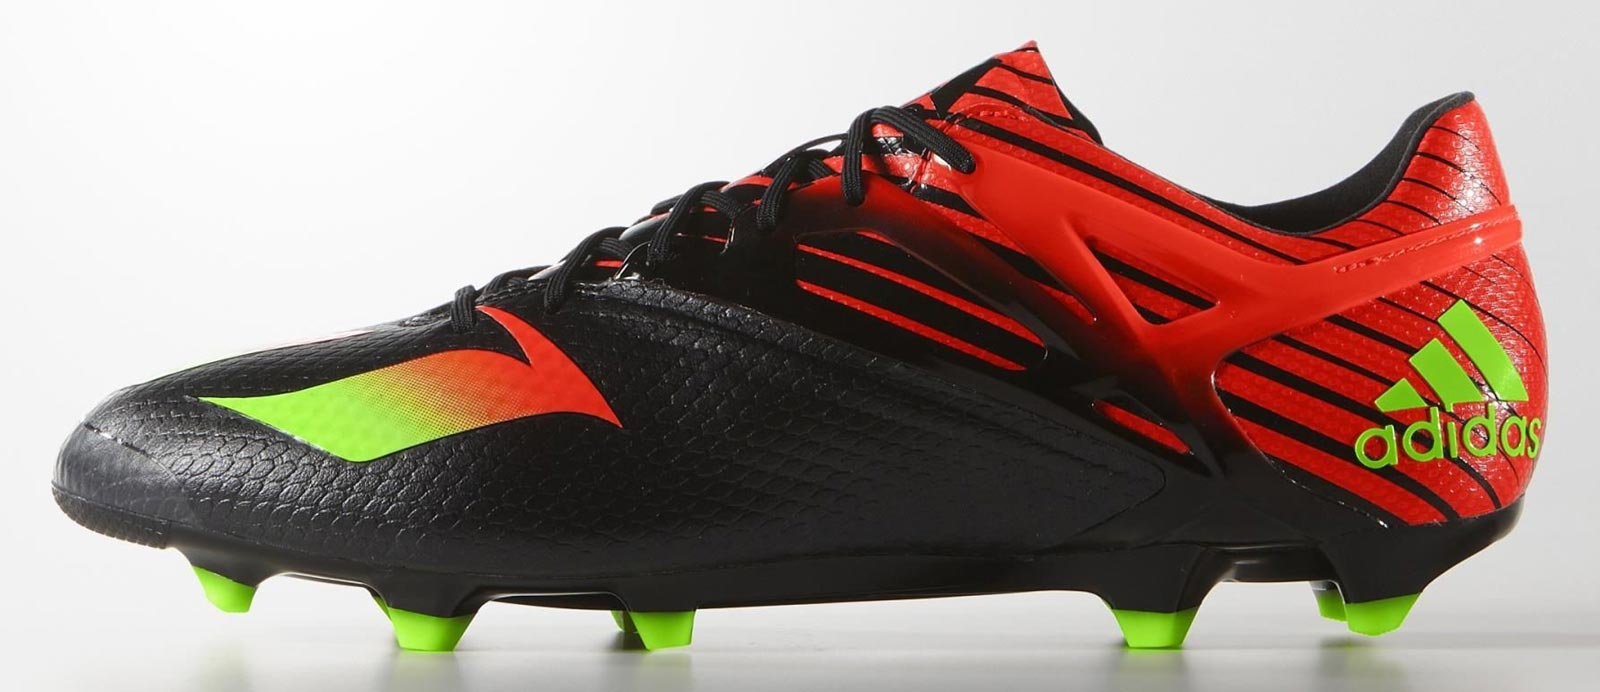 Adidas Messi 15.1 Black / Solar Green / Solar Red